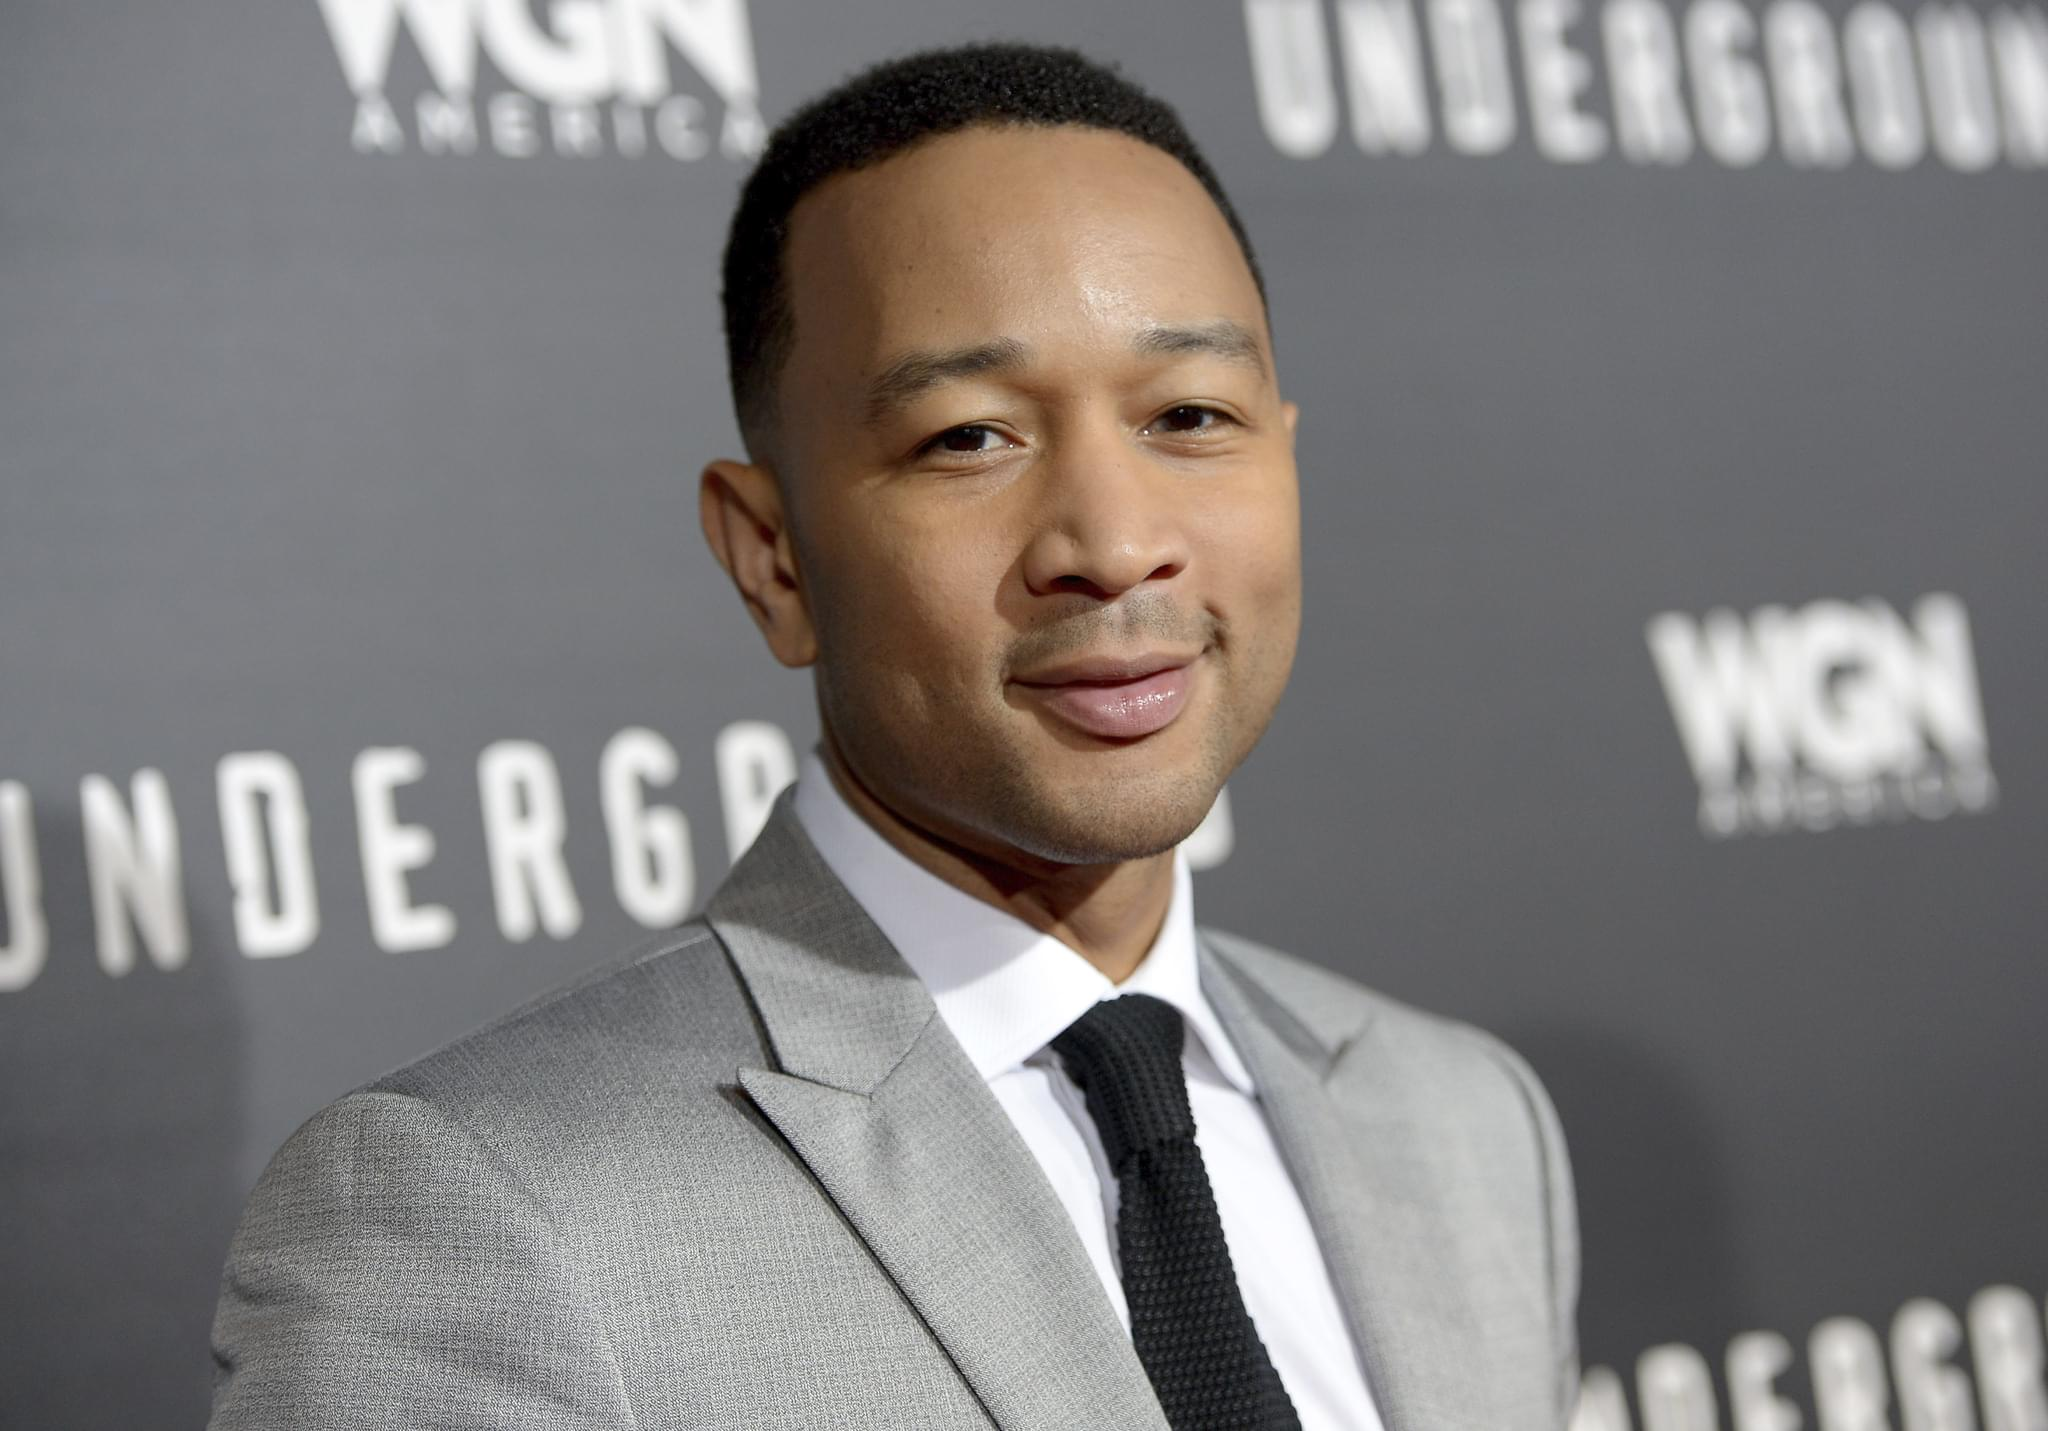 """John Legend Inspires With A Powerful Performance of """"Never Break"""" At The BET Awards"""